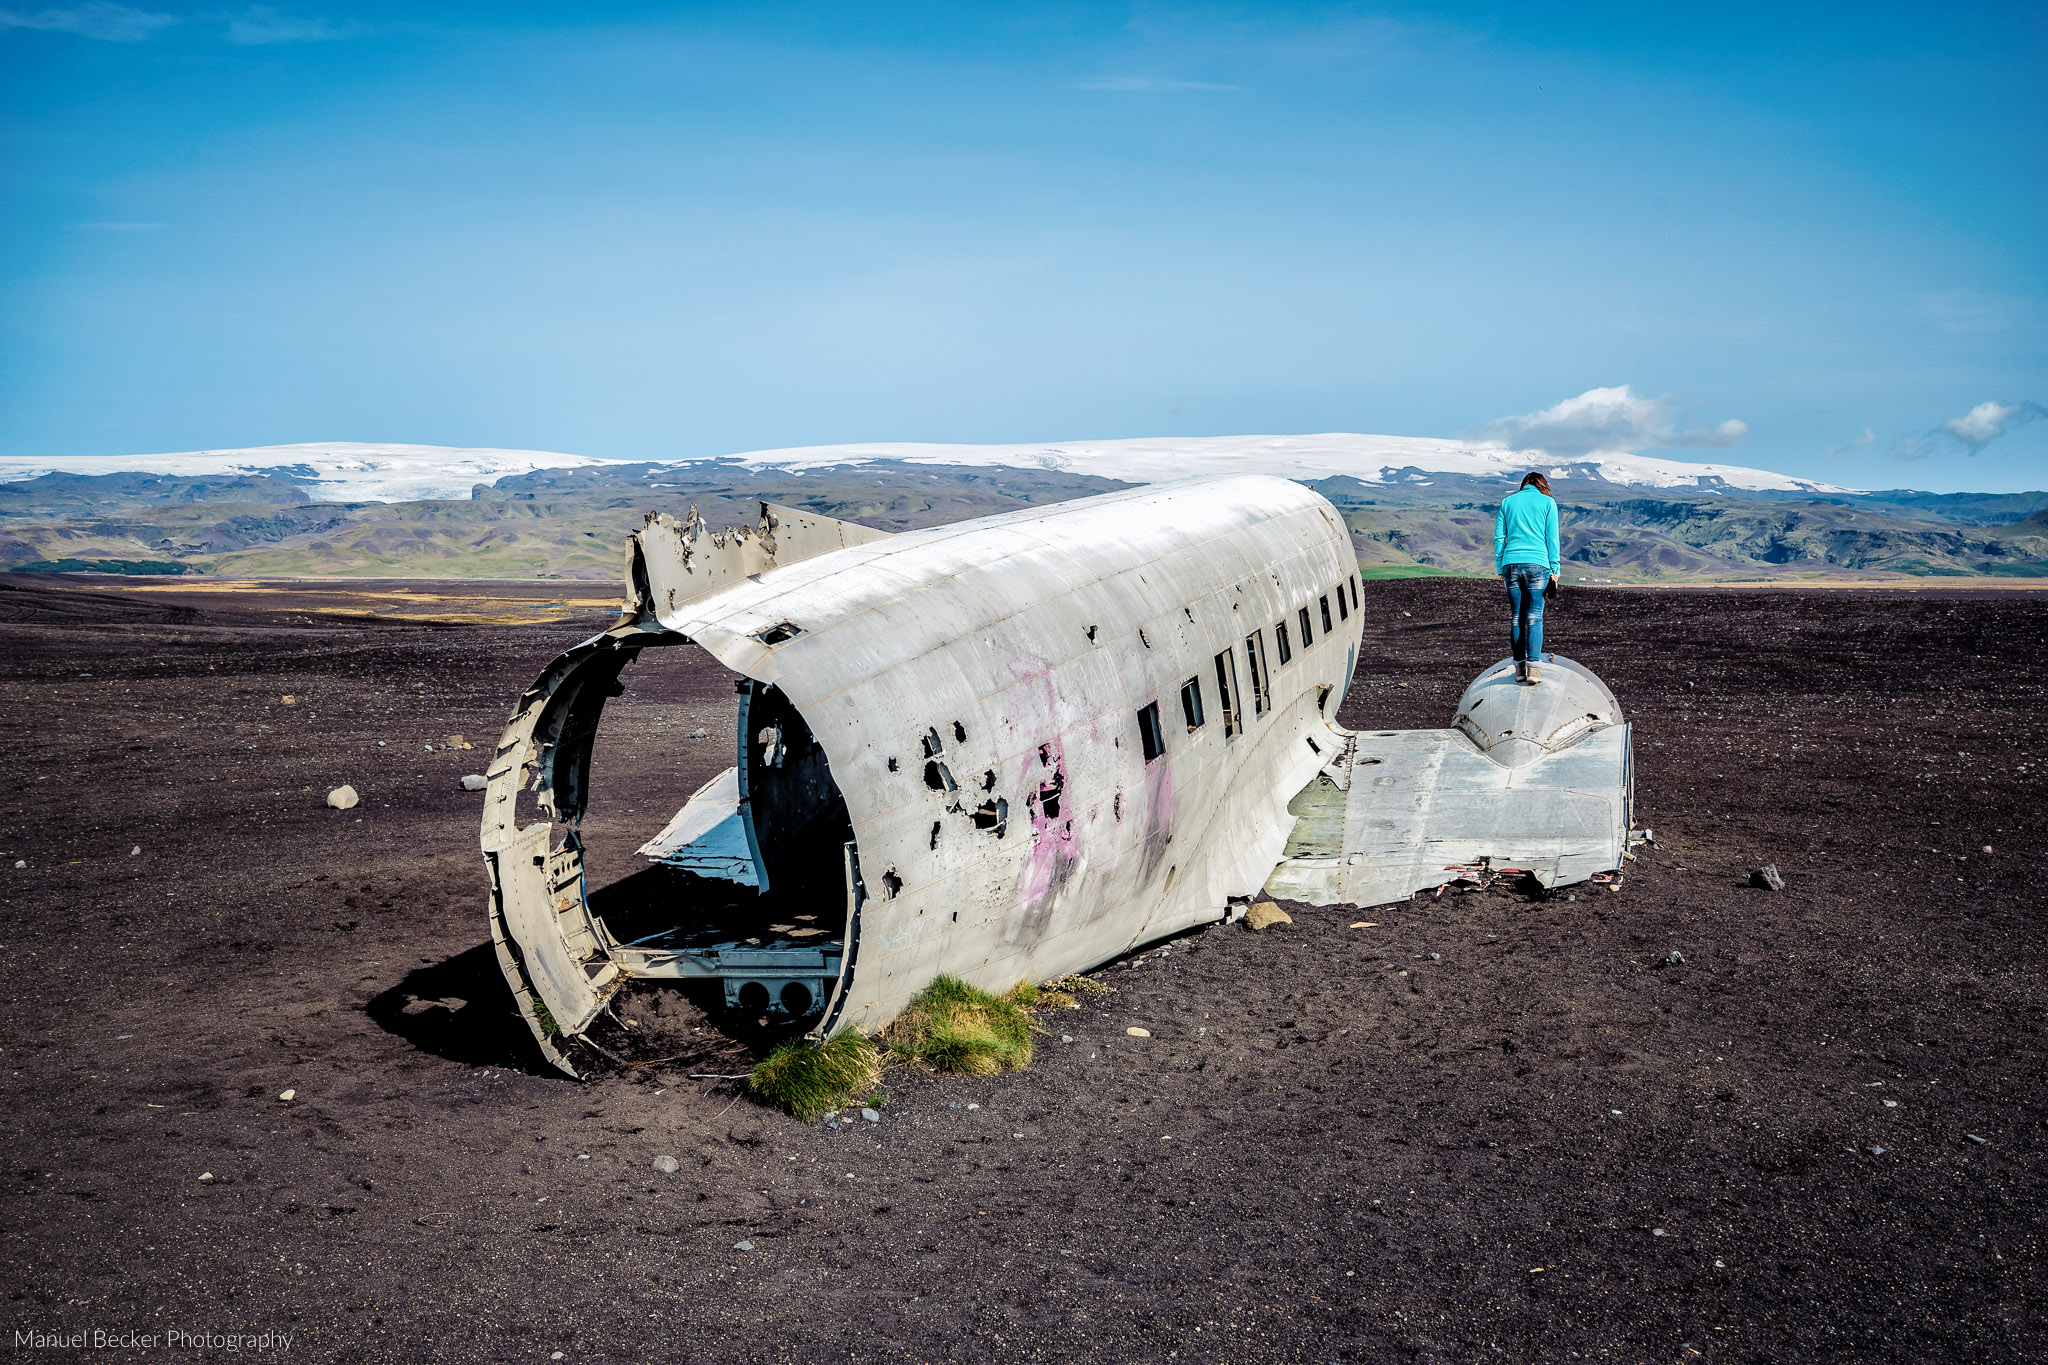 Road to DC-3 plane wreck in Iceland got closed